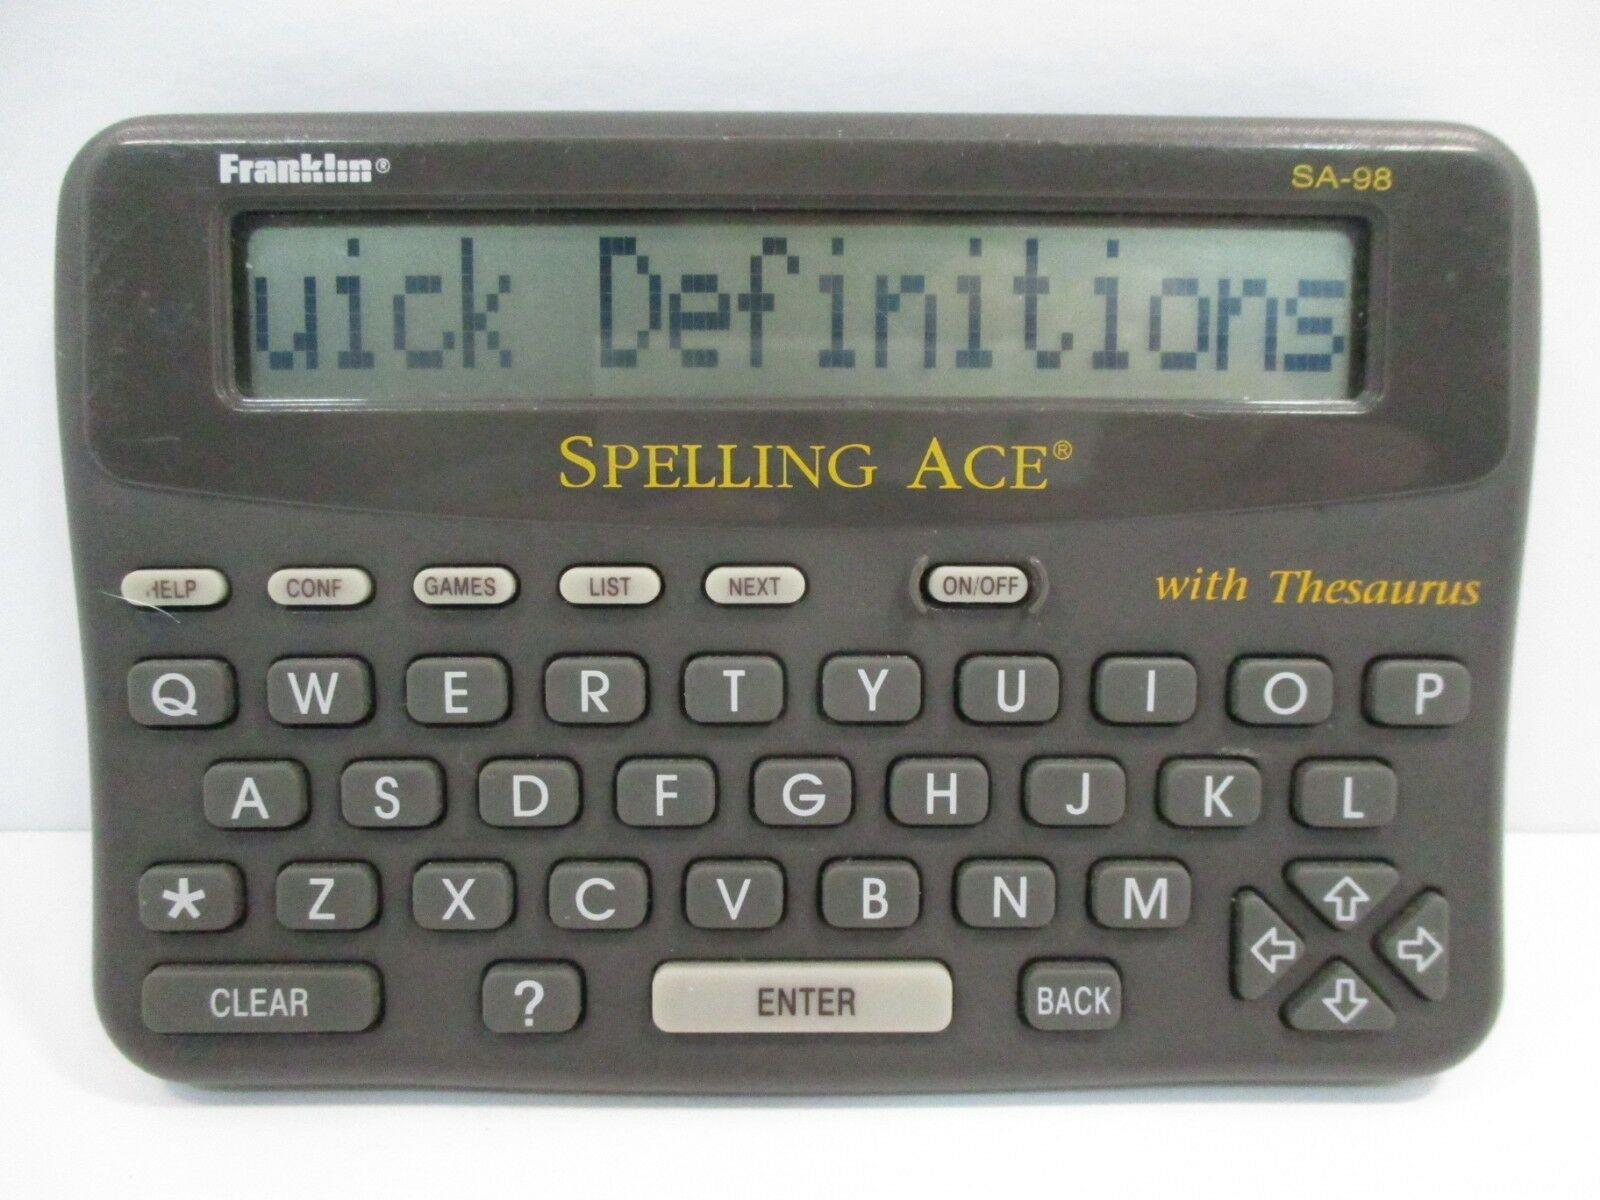 Franklin Spelling Ace W/ Thesaurus Merriam Webster SA-98 -Tested & Working